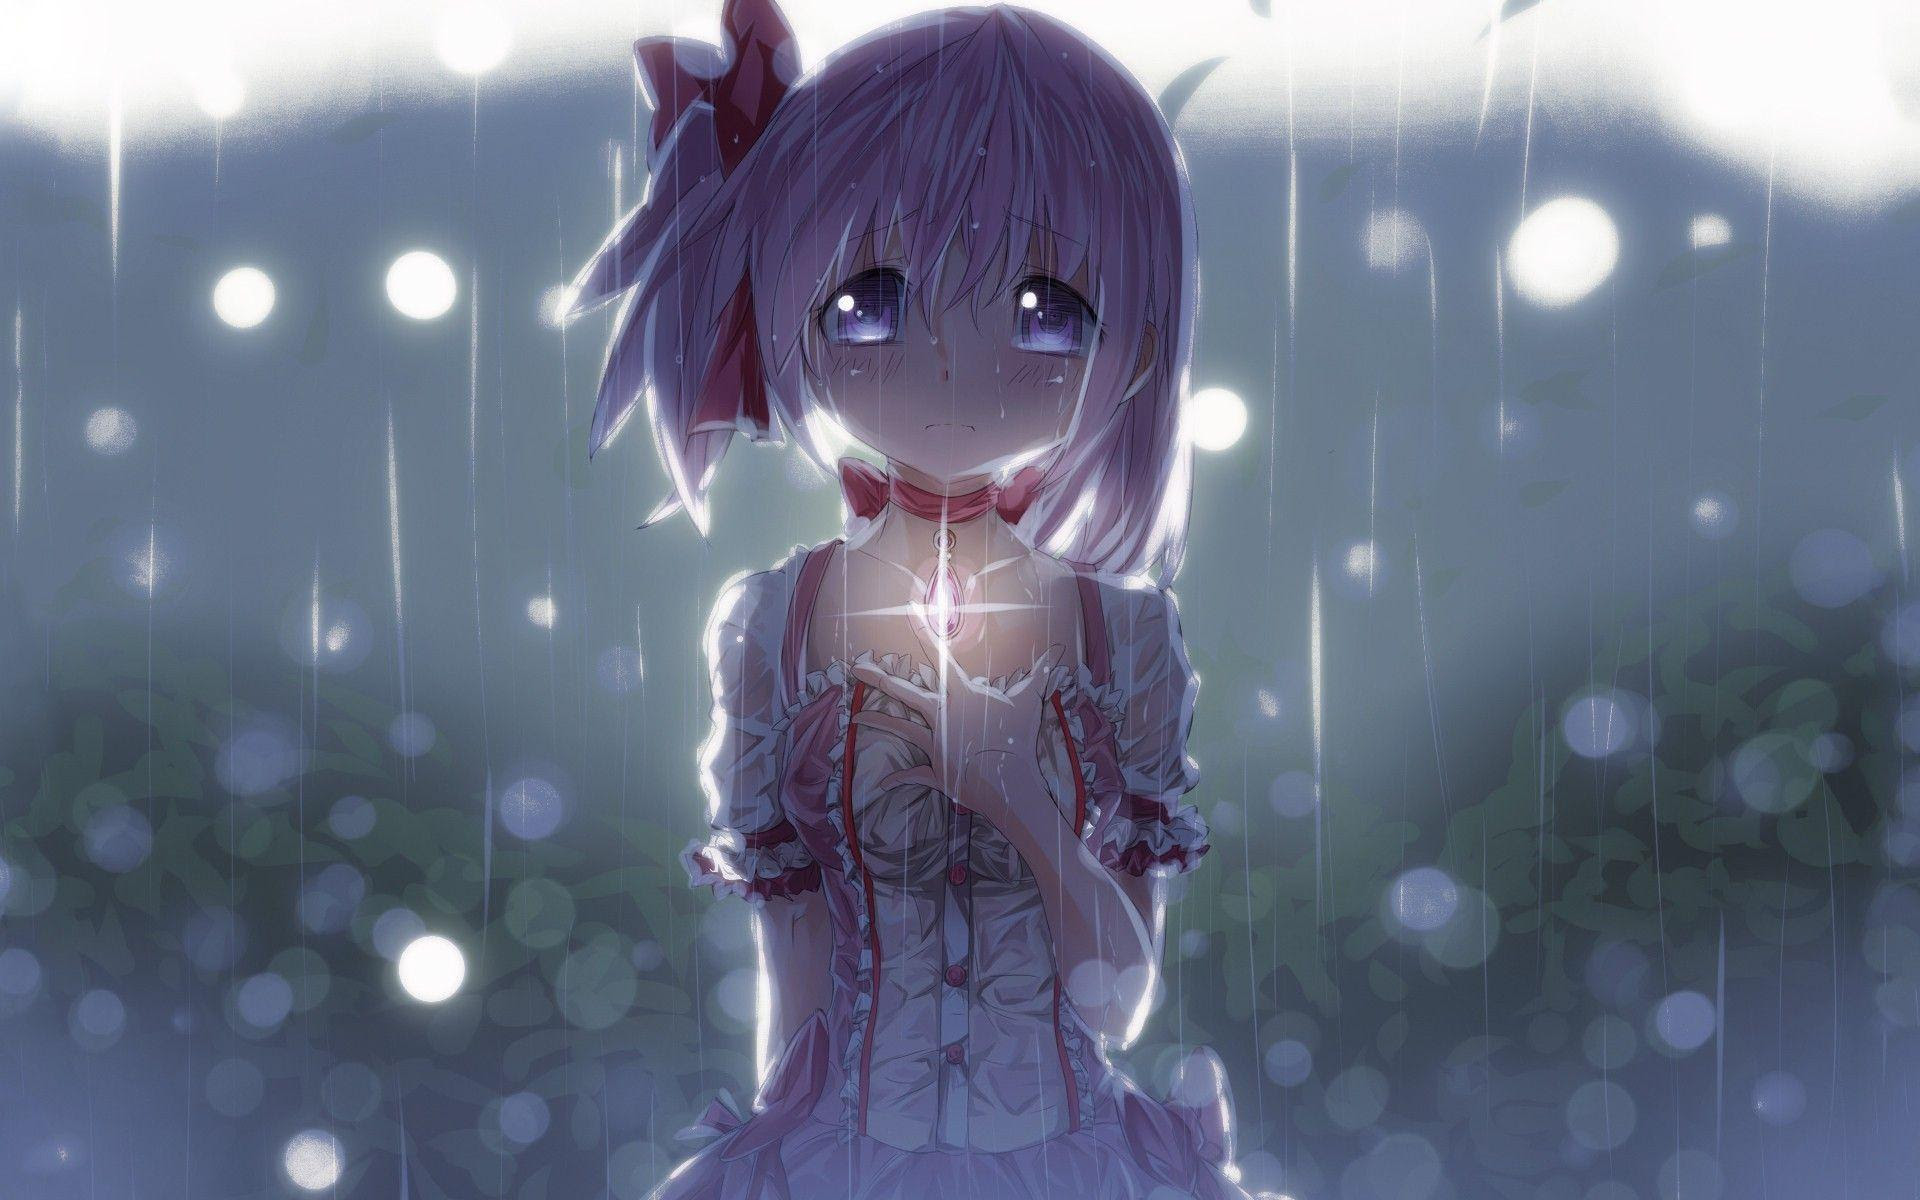 Unduh 58+ Wallpaper Anime Cry Hd HD Terbaik